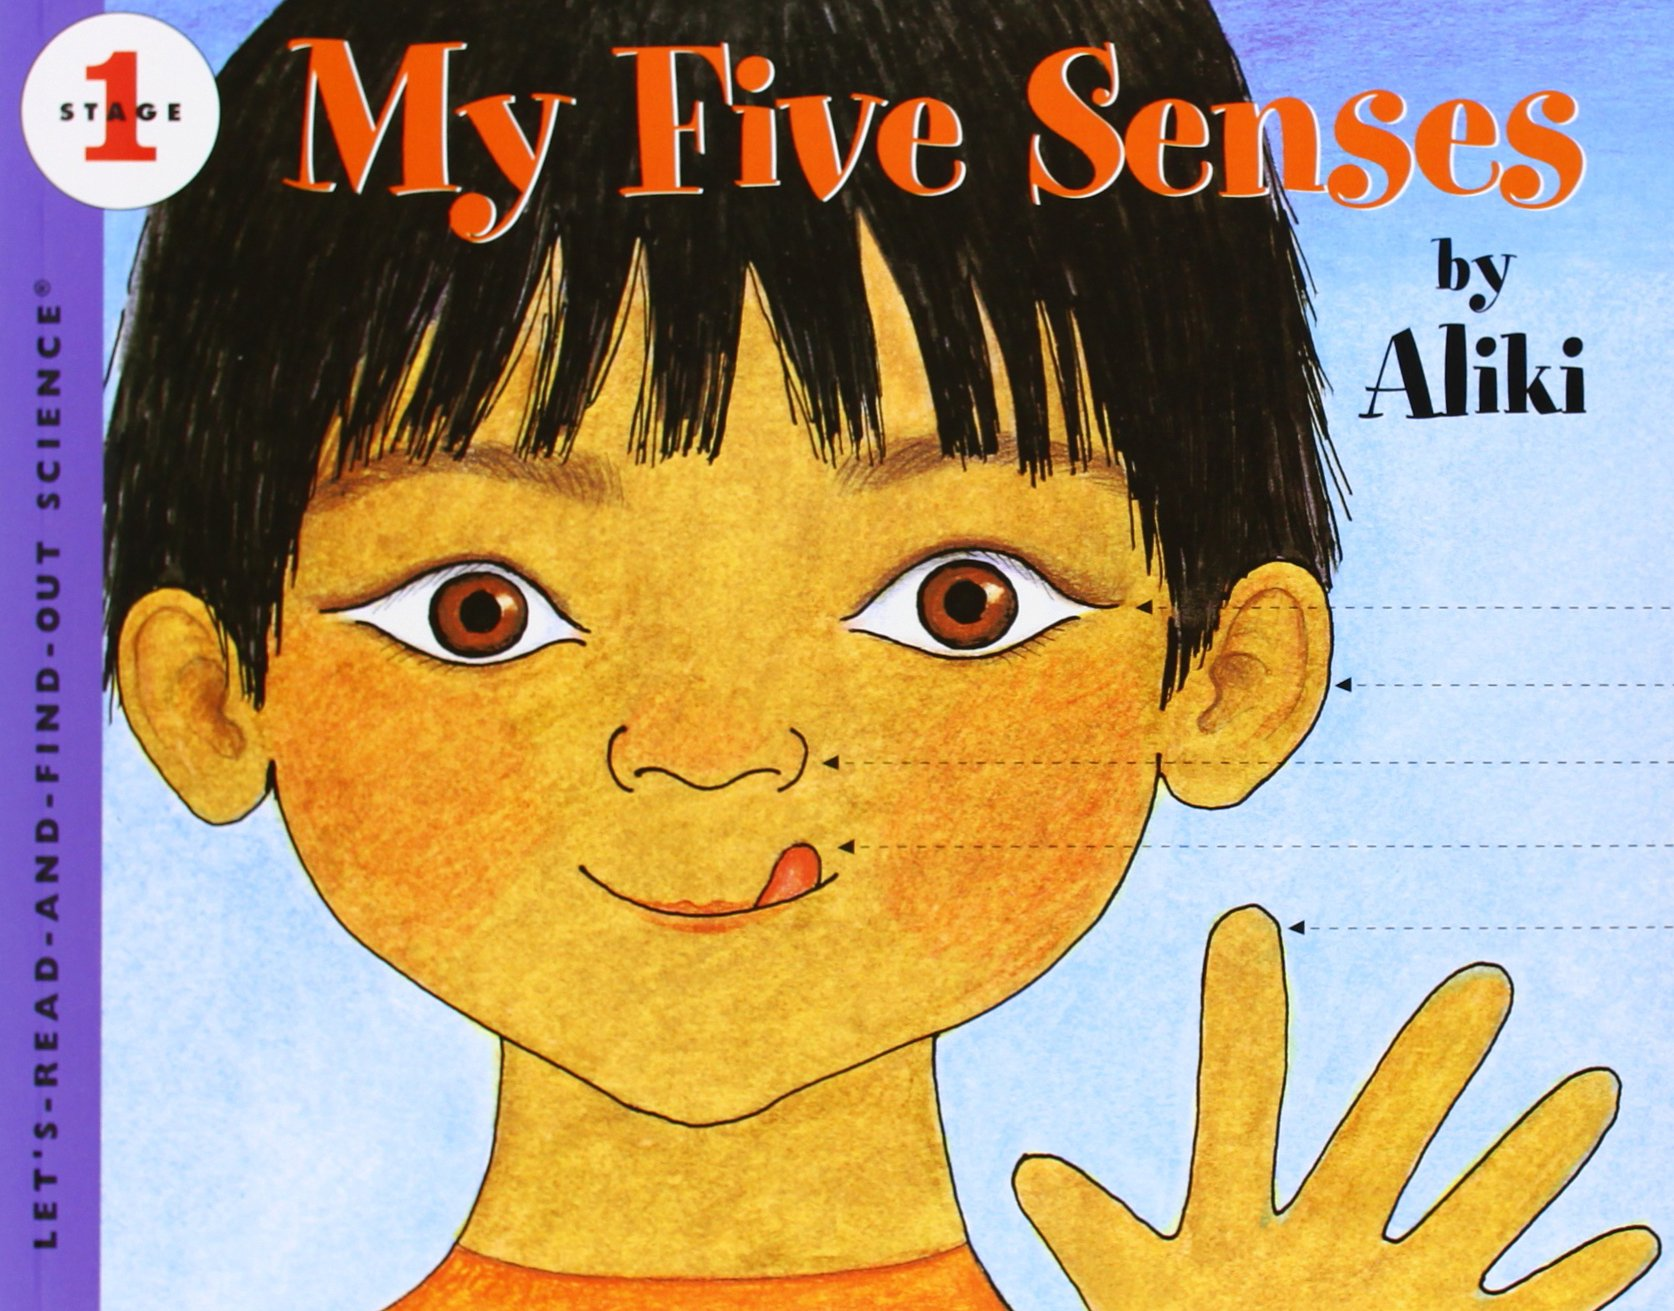 Five Sense Worksheet New 359 Five Senses Preschool Story